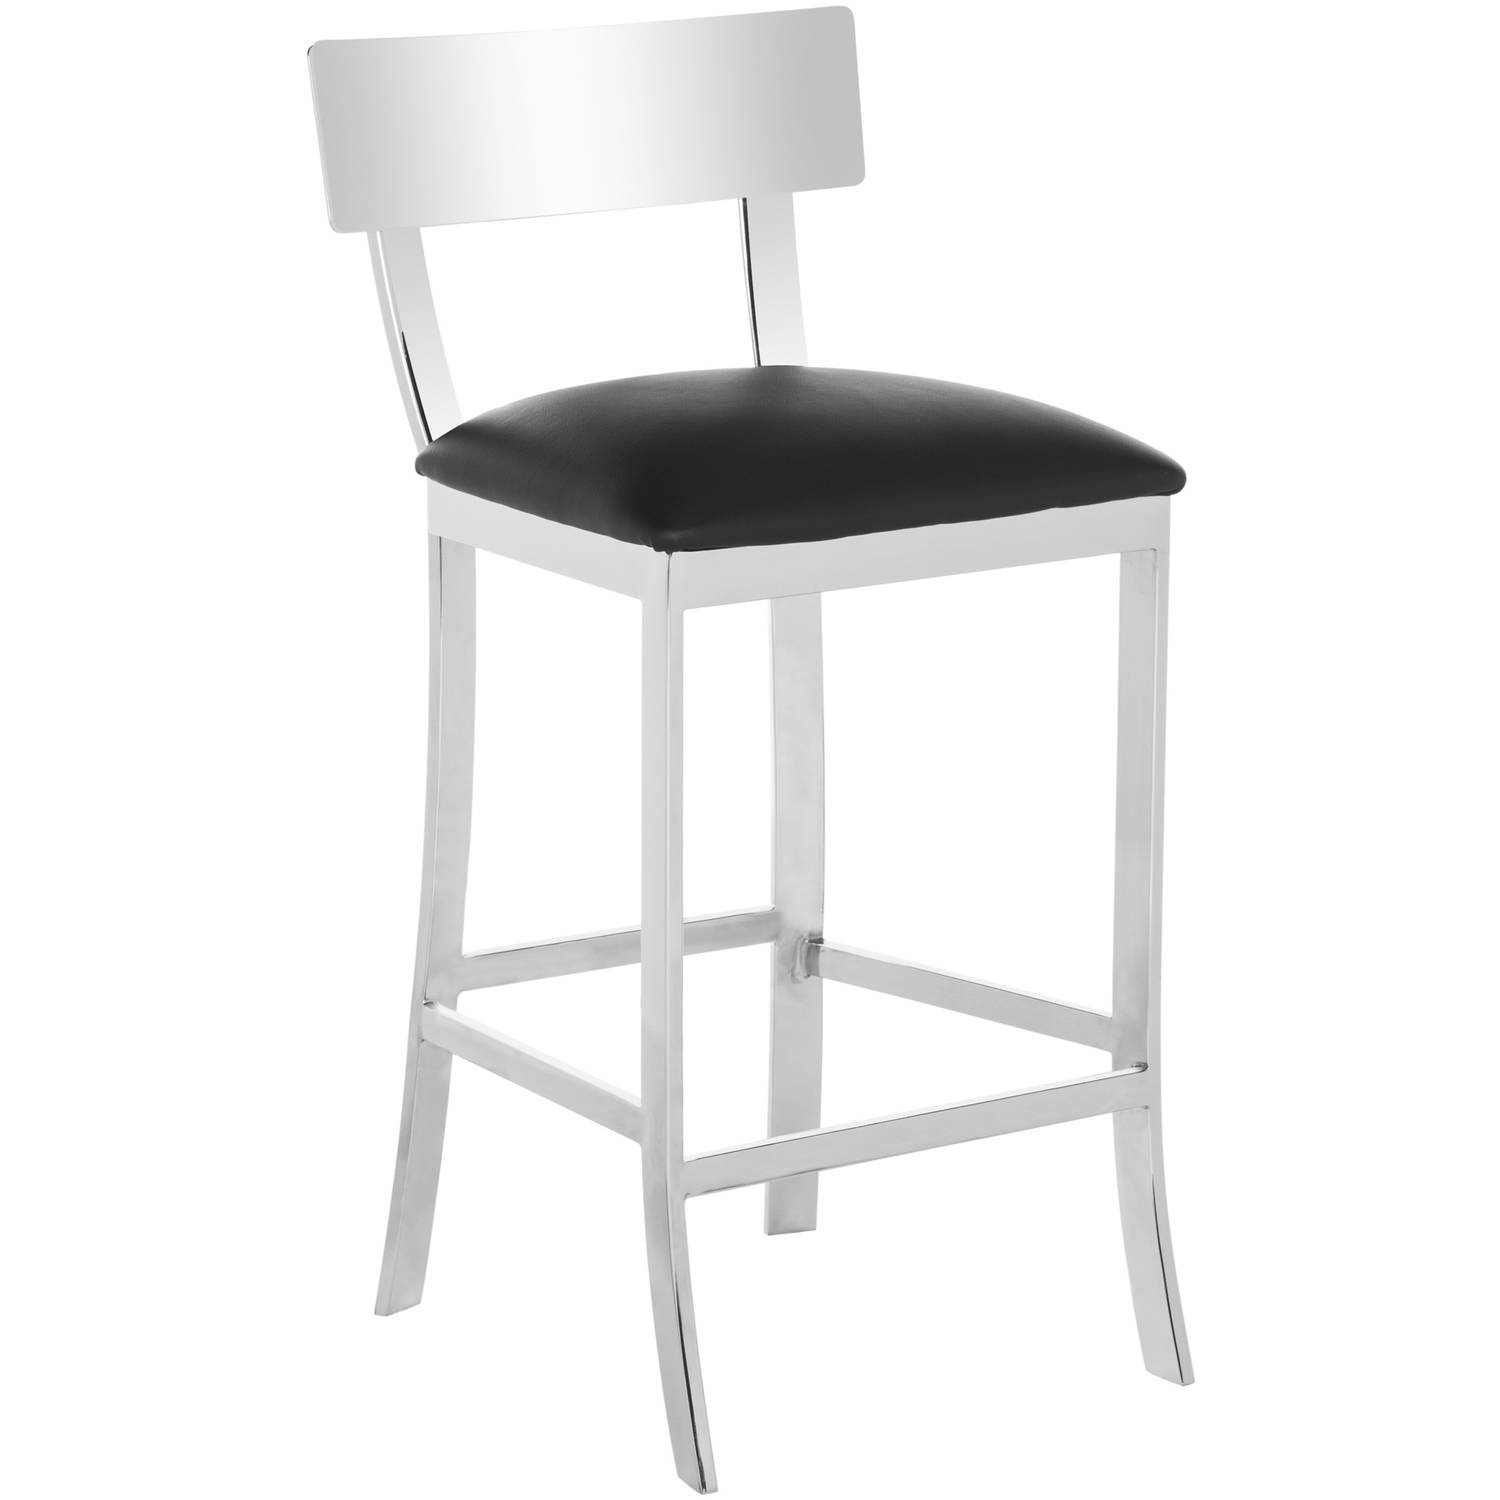 Stainless Bar Stools Safavieh Abby Stainless Steel Bicast Leather Counterstool